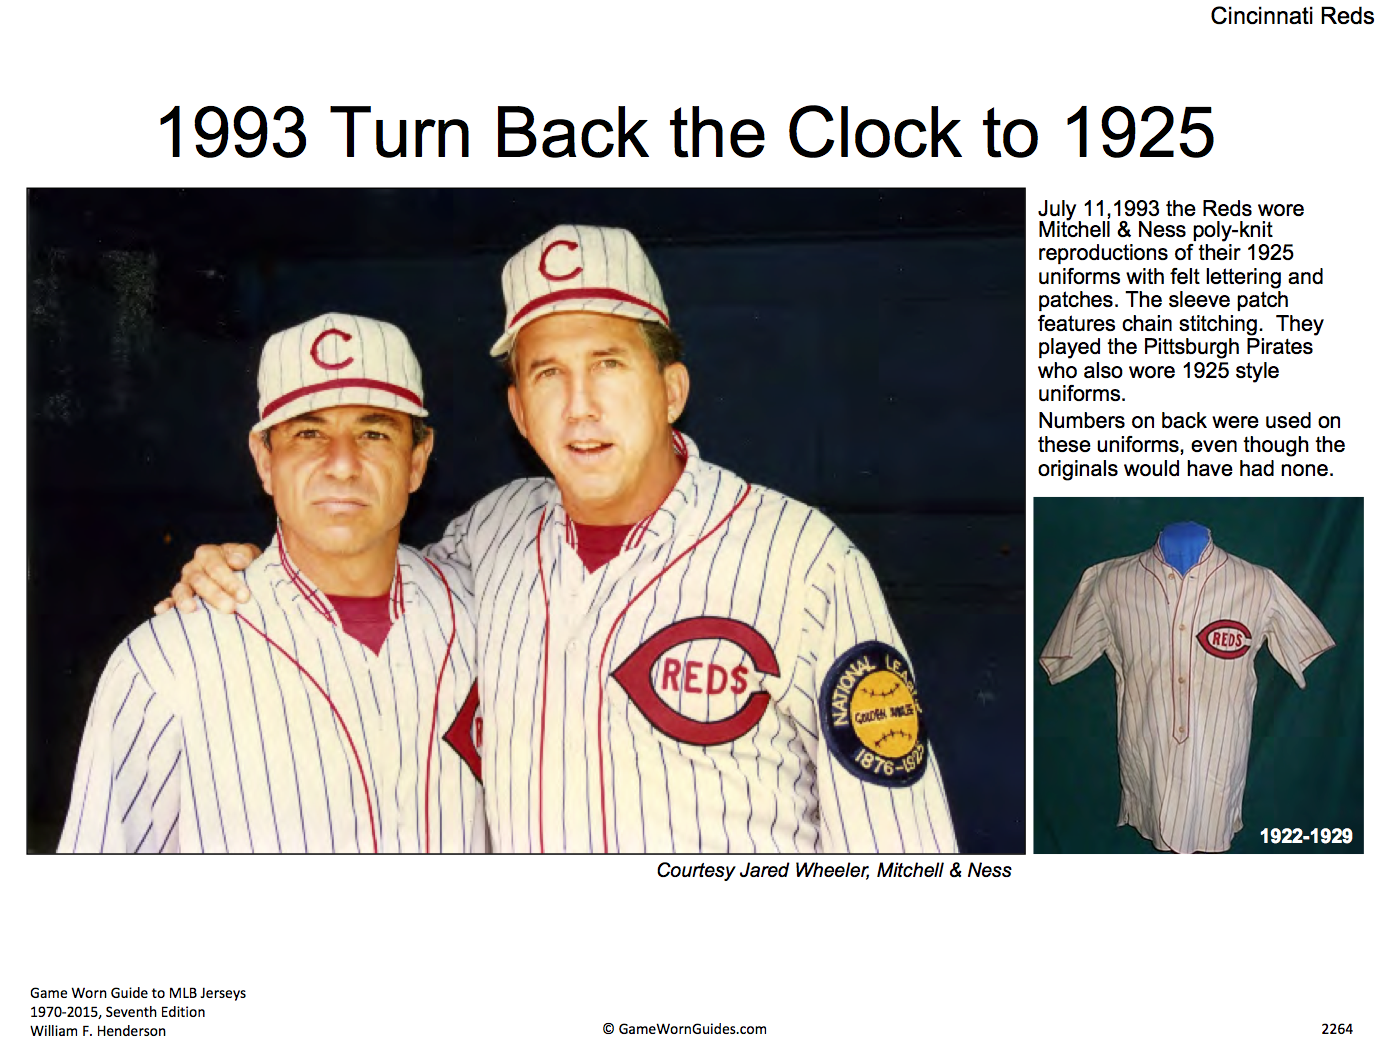 4a6bed40fe4 Honorable Mention  Always fun to see the classic Big Red Machine unis. ...  The Reds also looked good ...